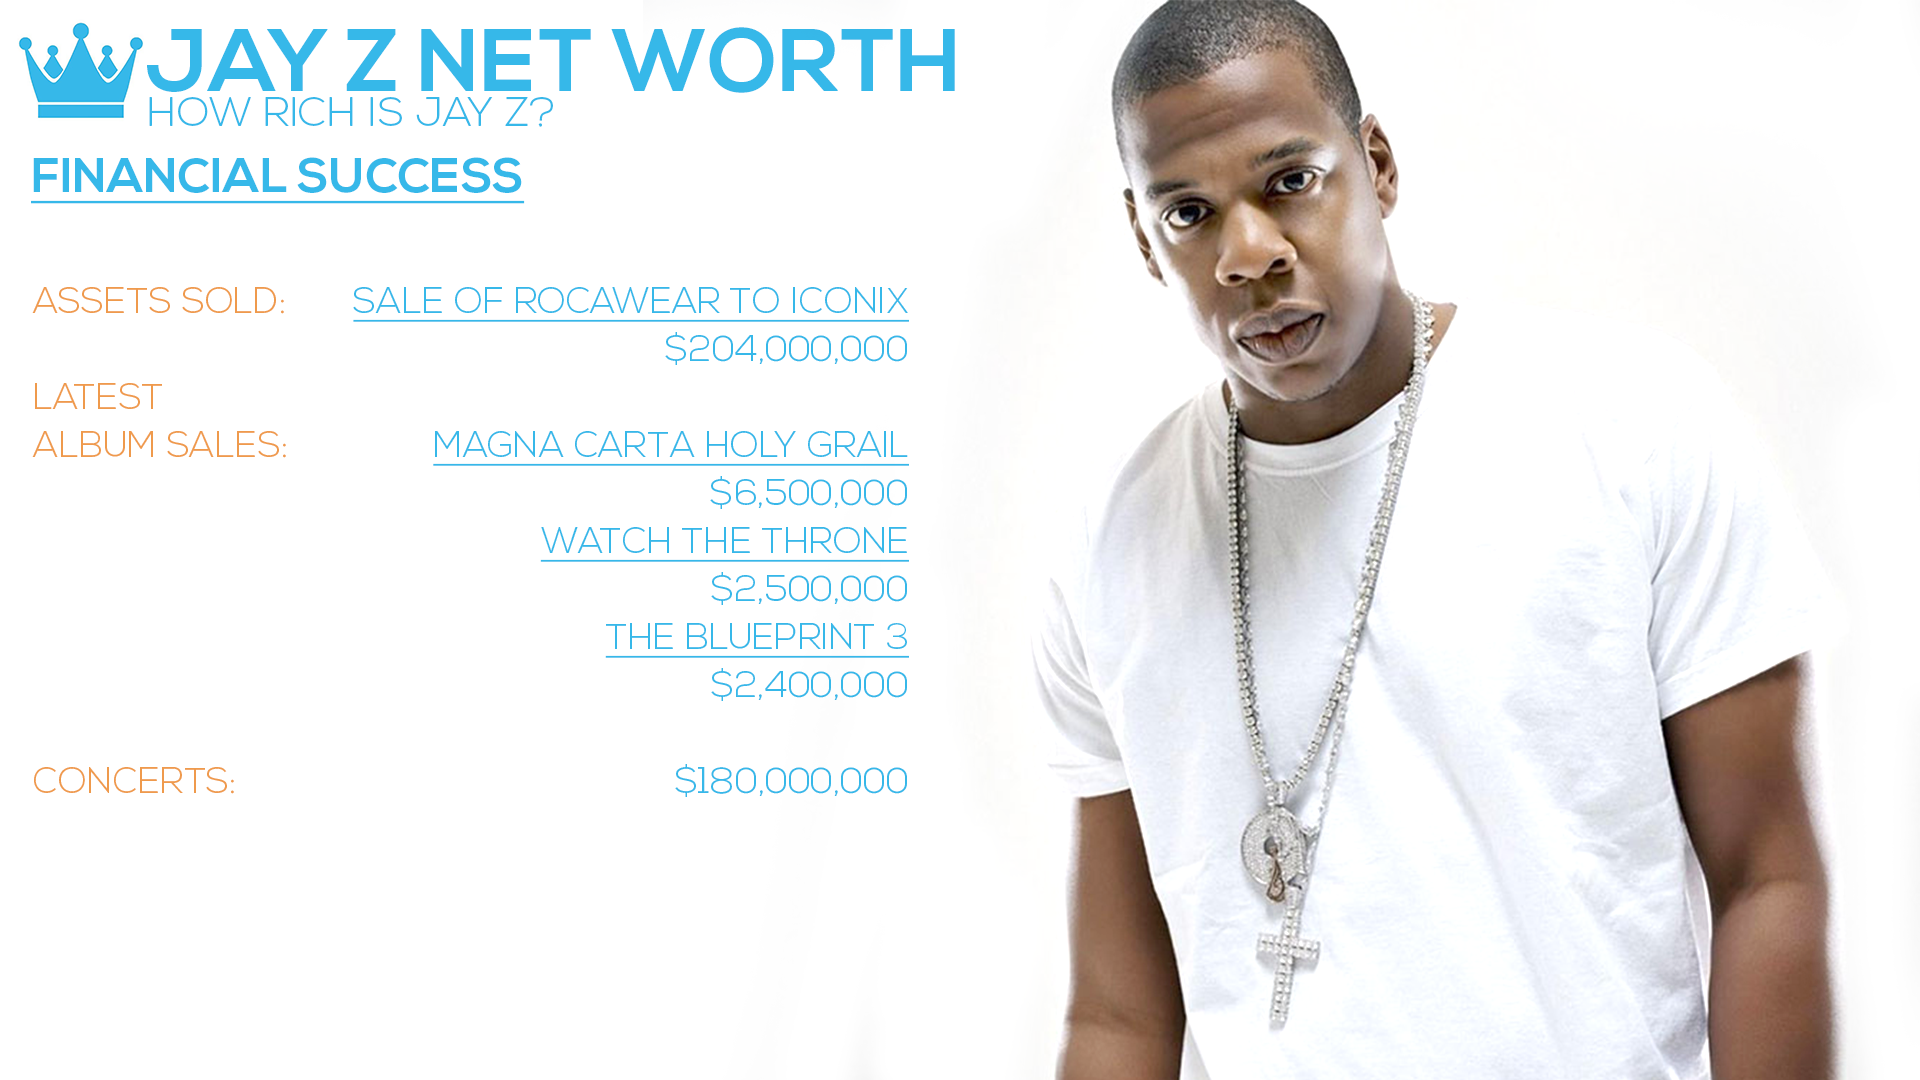 Jay Z Net Worth How rich is Jay Z? What is Jay Z Net Worth ? How much money is Jay Z making per year?